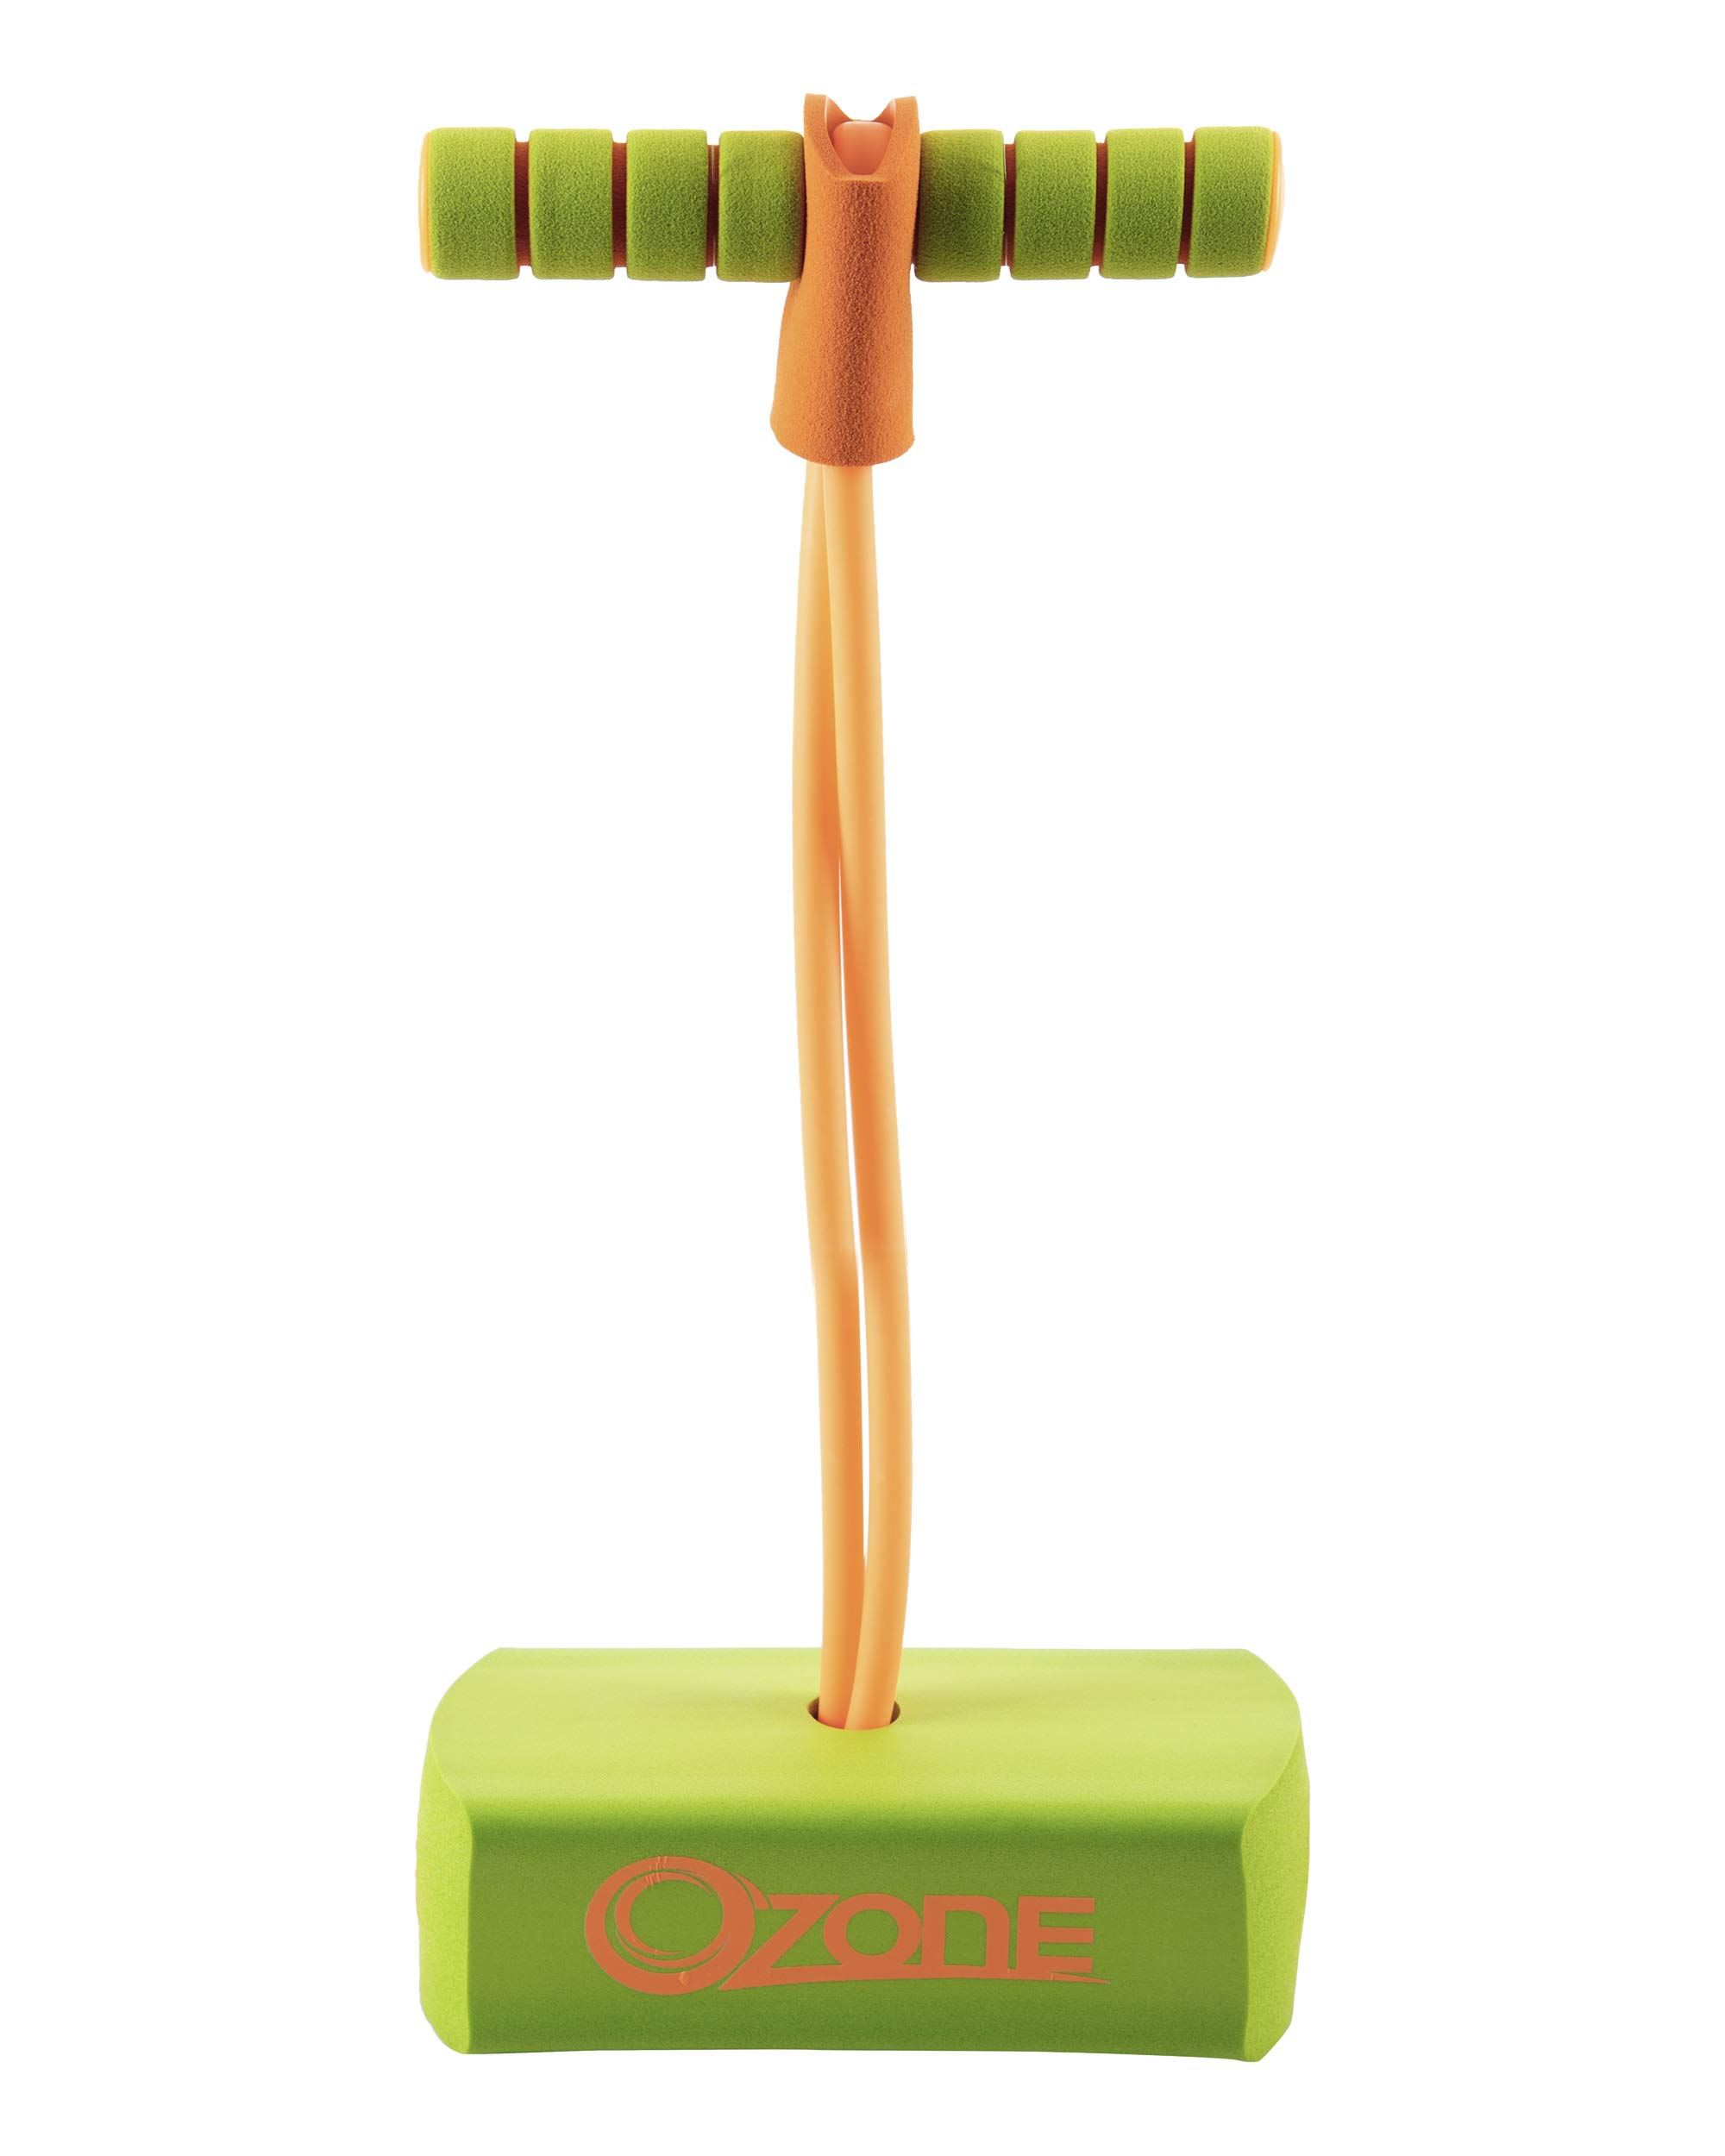 Flybar My First Foam Pogo Jumper with Flashing LED Lights & Pogo Counter Safe Pogo Hopper for Kids Ages 3 & Up (Green Ozone) by Flybar